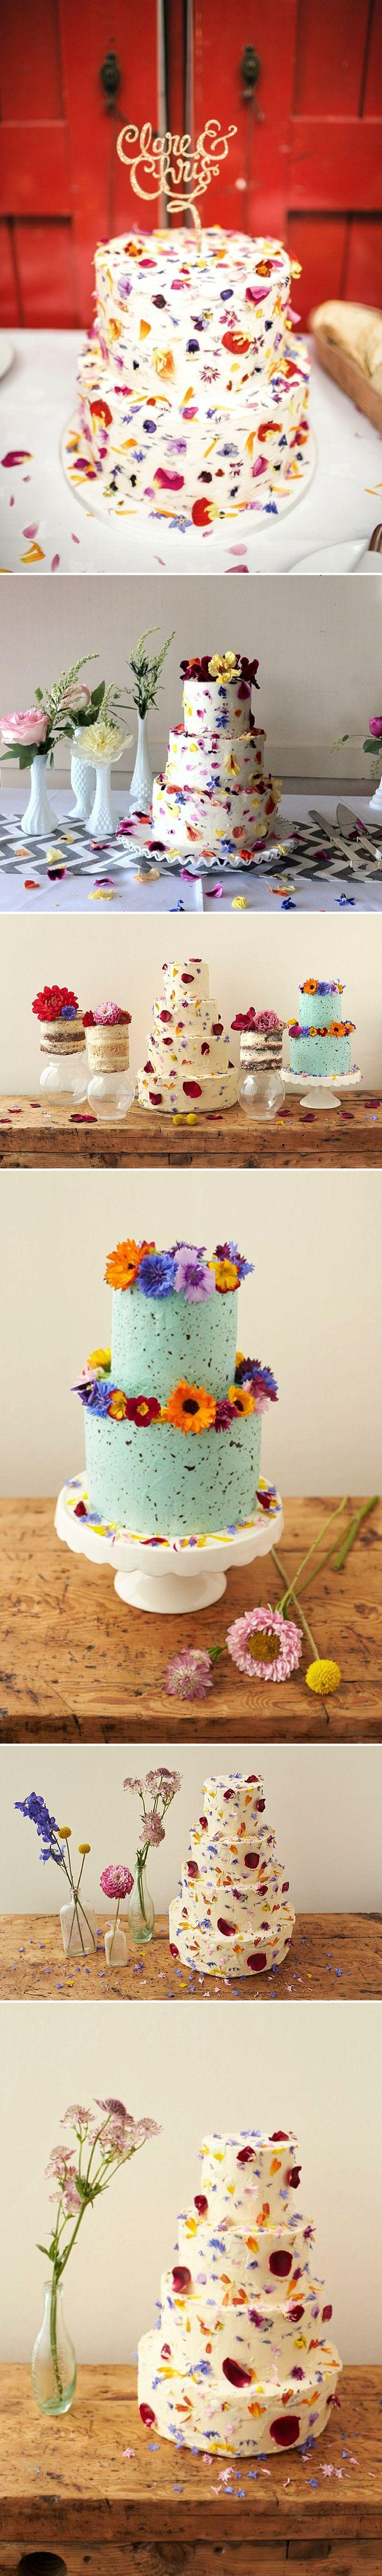 Свадьба - How To Decorate A Wedding Or Celebration Cake With Edible Petals - Bee's Bakery